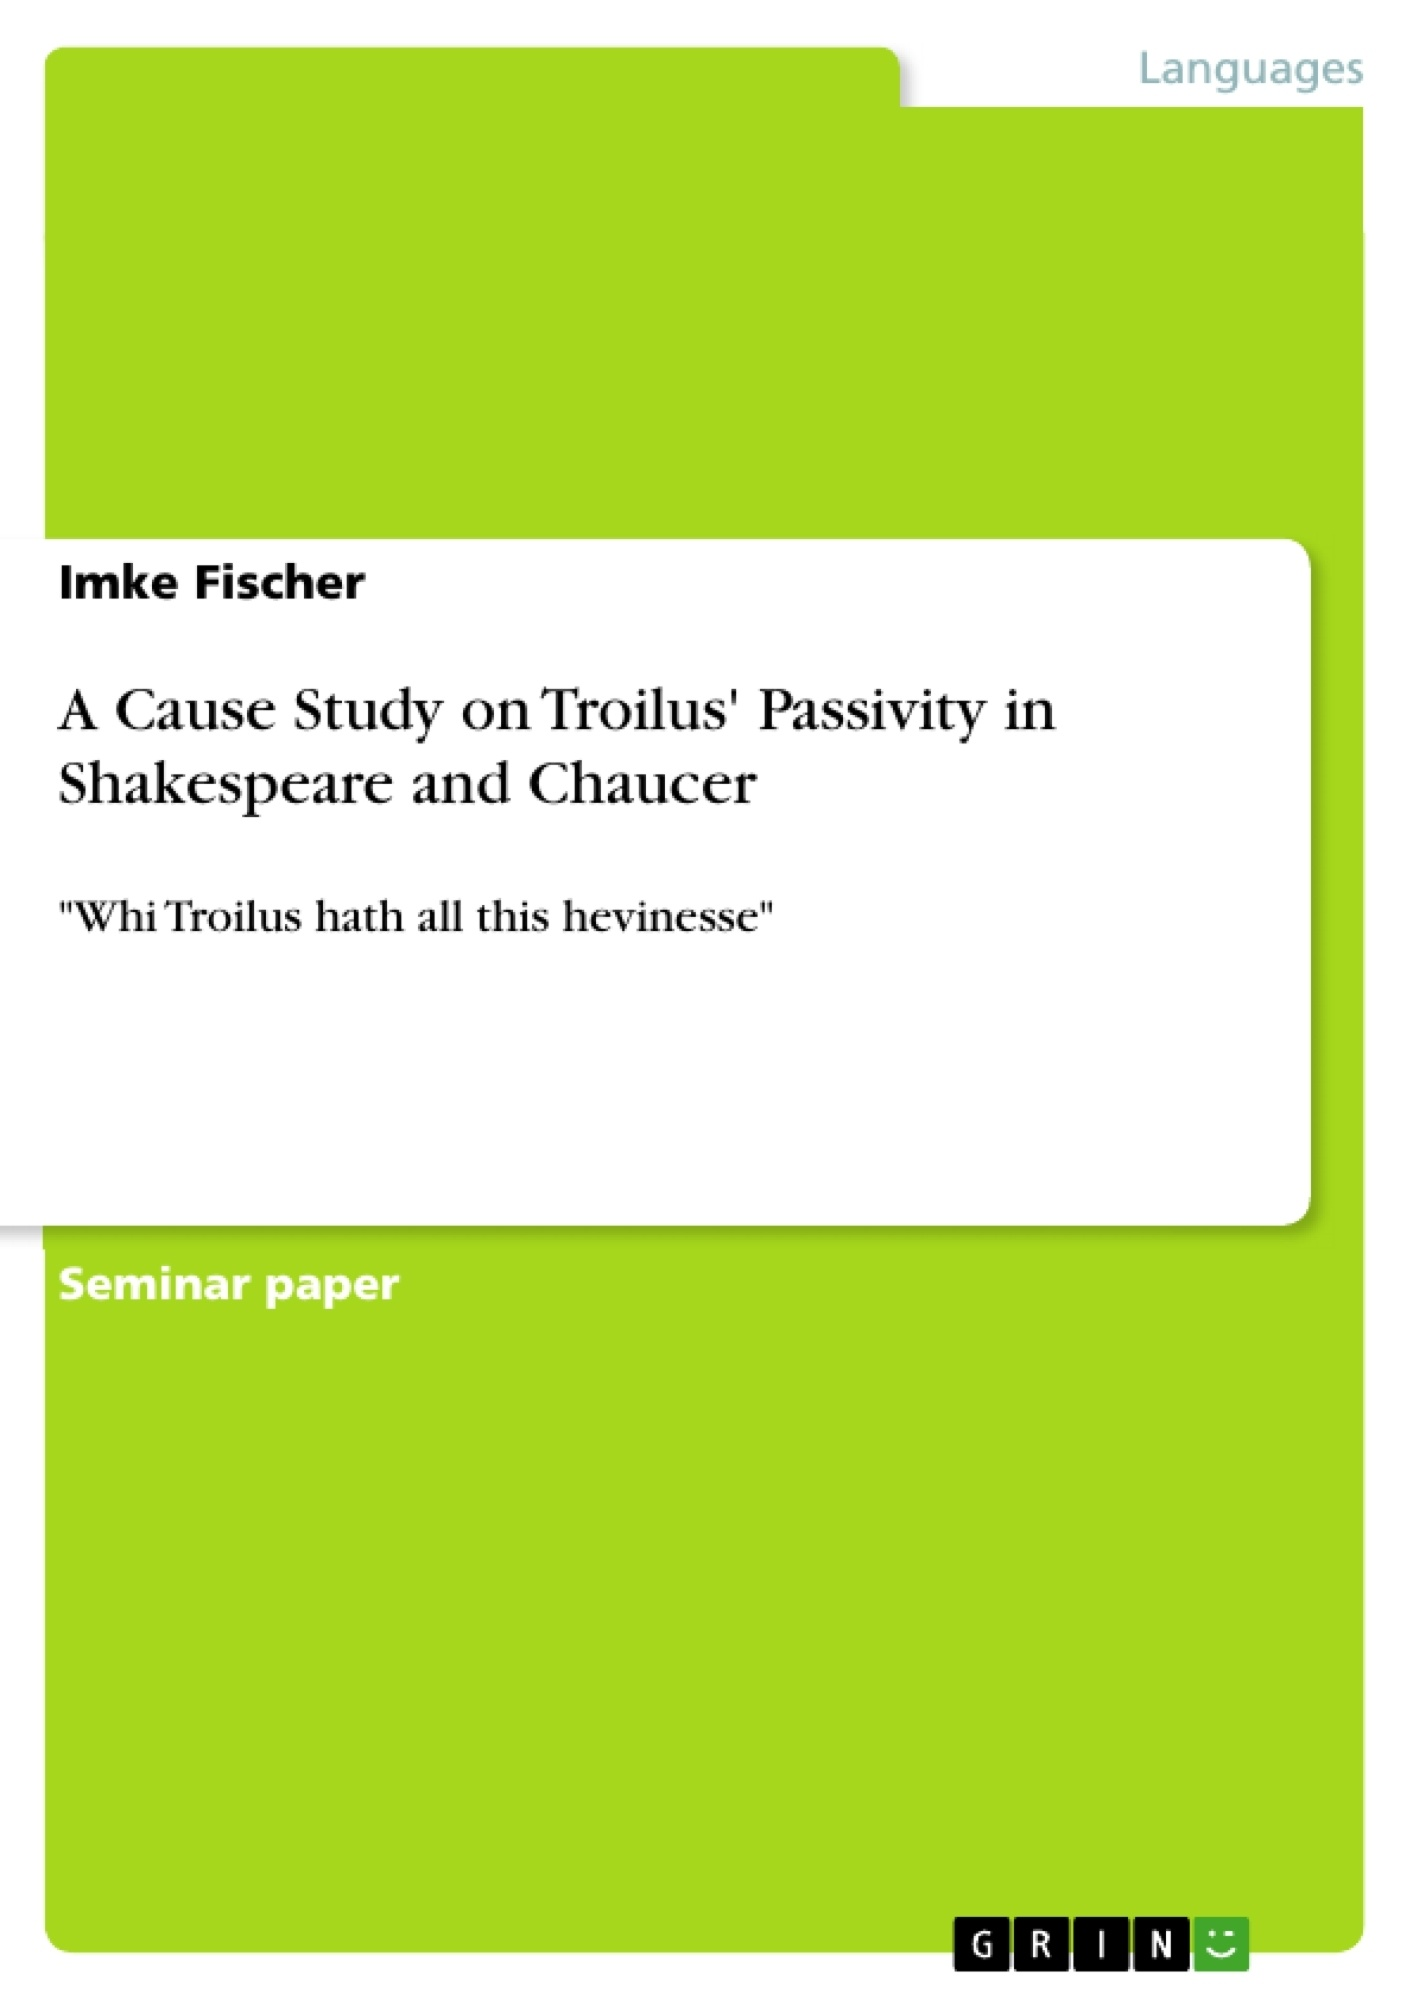 Title: A Cause Study on Troilus' Passivity in Shakespeare and Chaucer